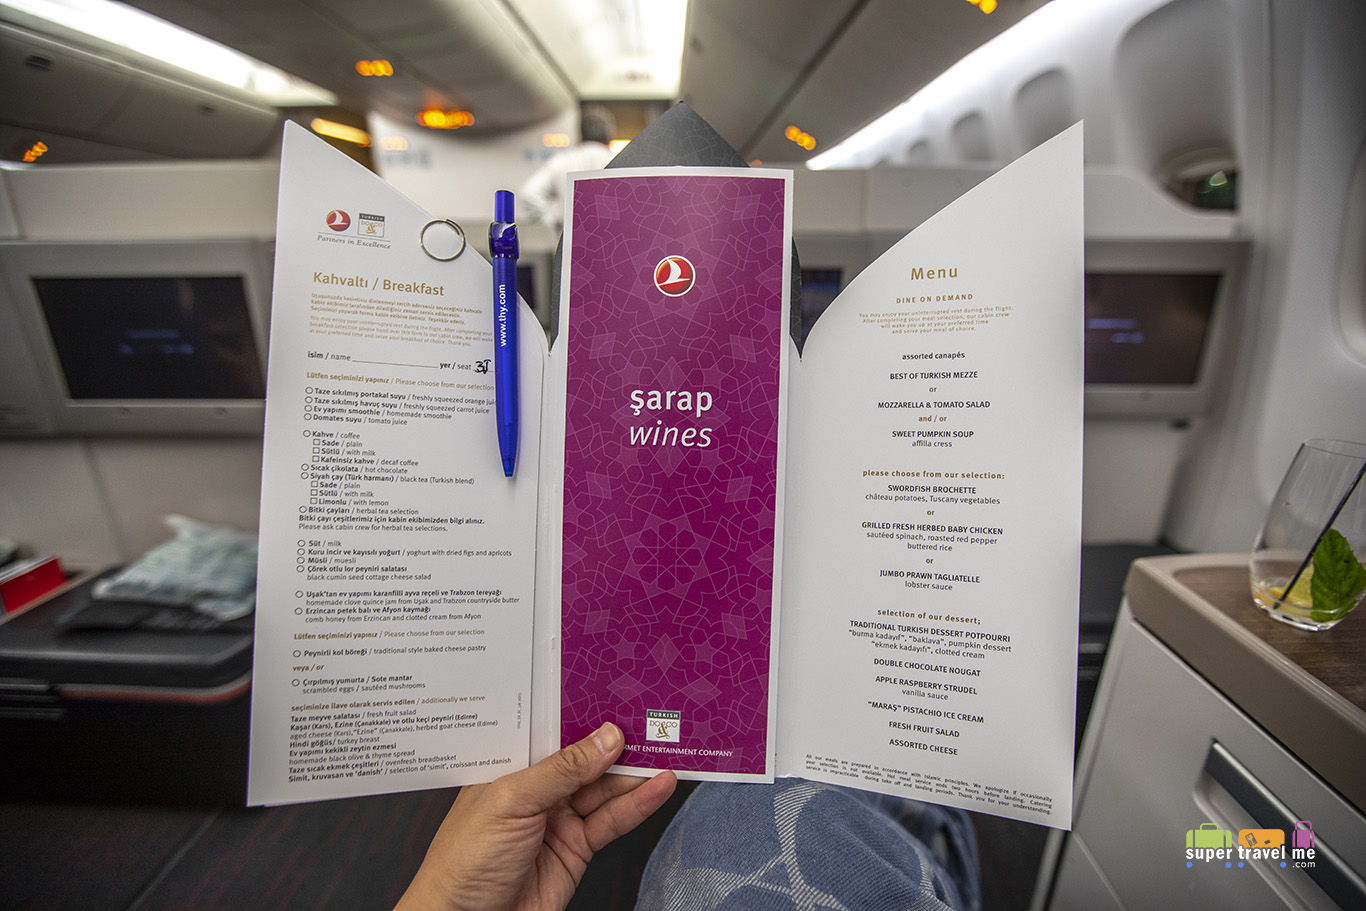 Turkish Airlines business class inflight meal menu for long haul flights